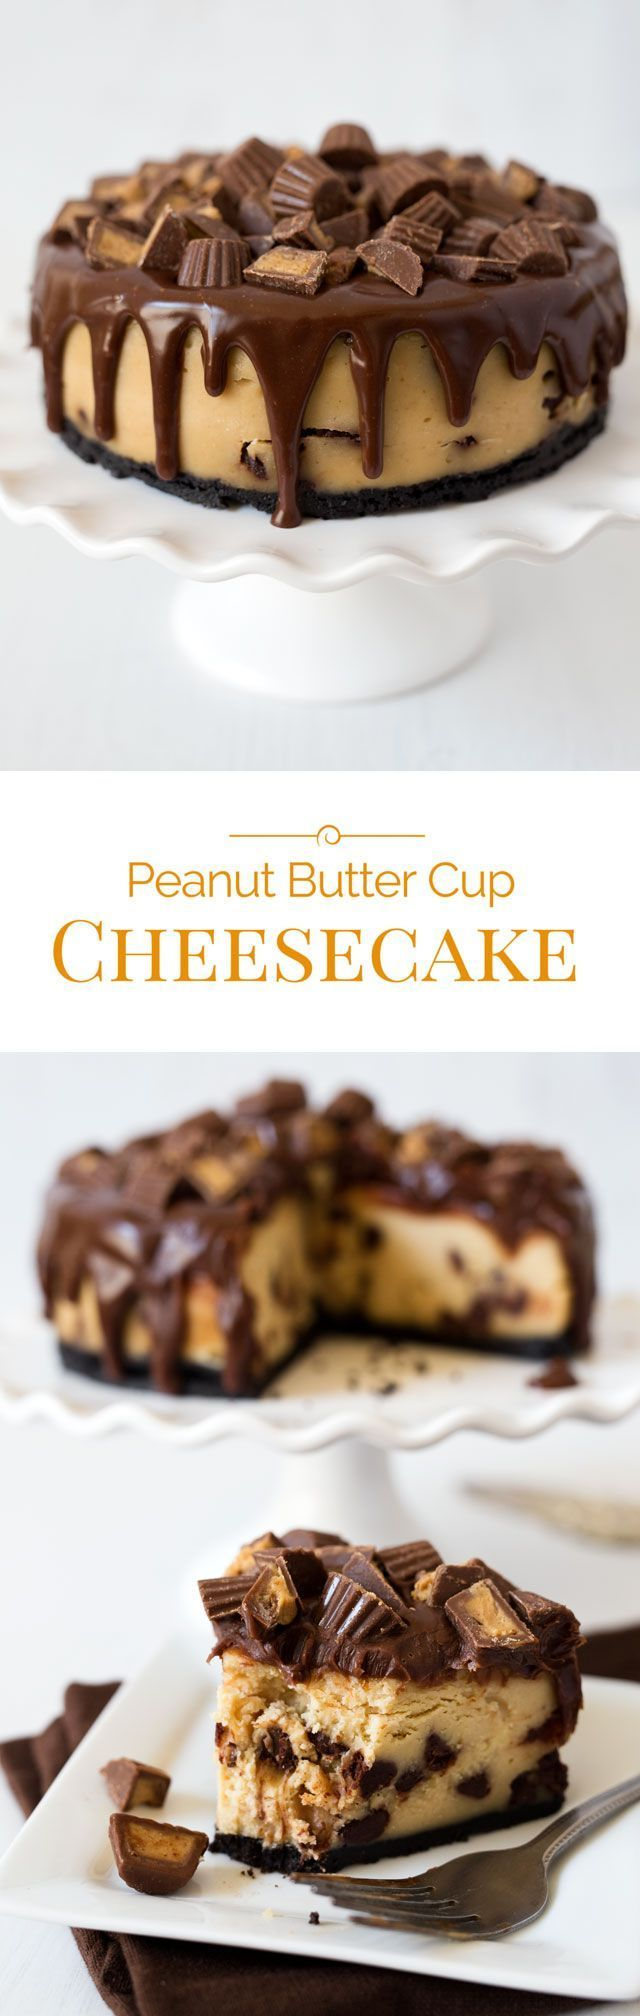 Instant Pot / Pressure Cooker Peanut Butter Cup Cheesecake ...